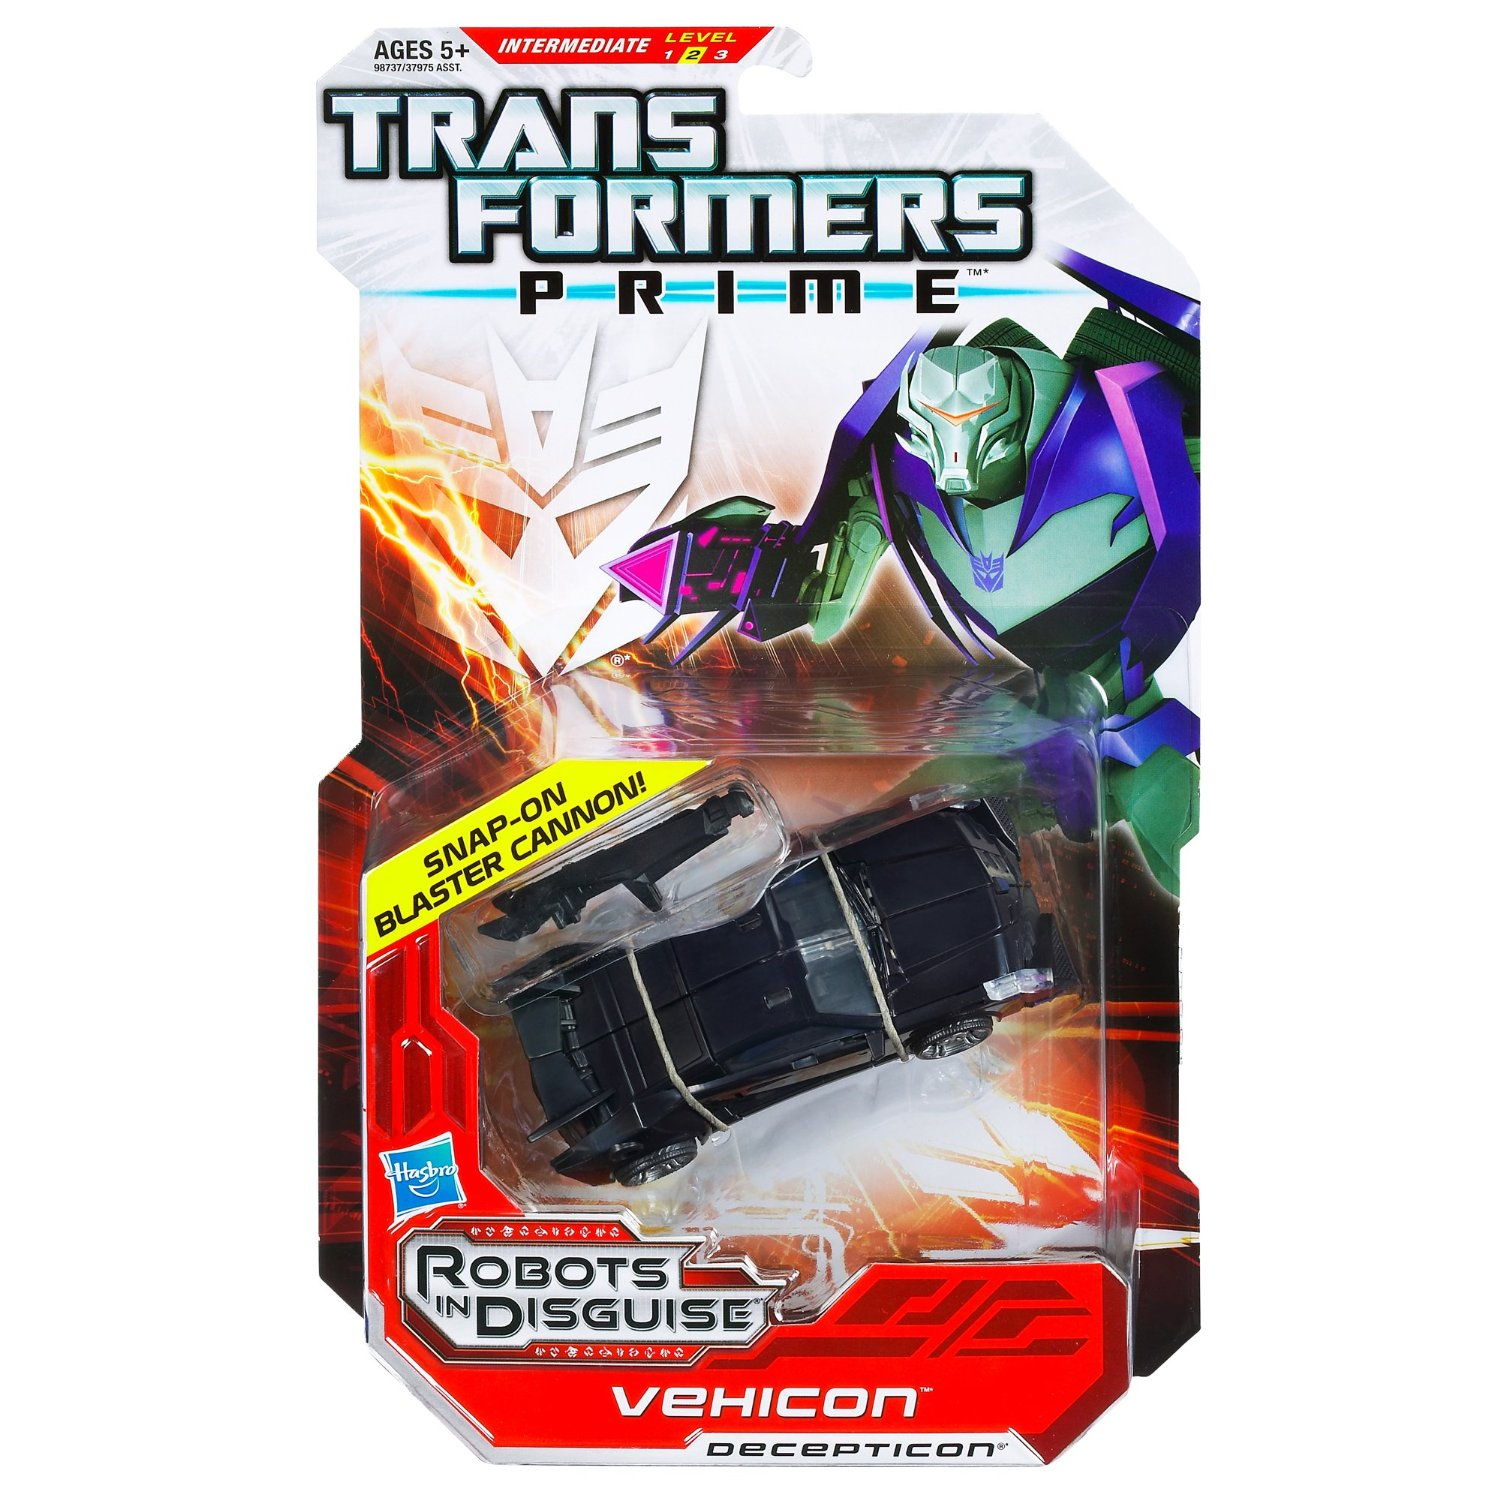 Kids-Transformers-Prime-Robots-In-Disguise-Deluxe-Figure-Vehicles-Toys-Ages-5